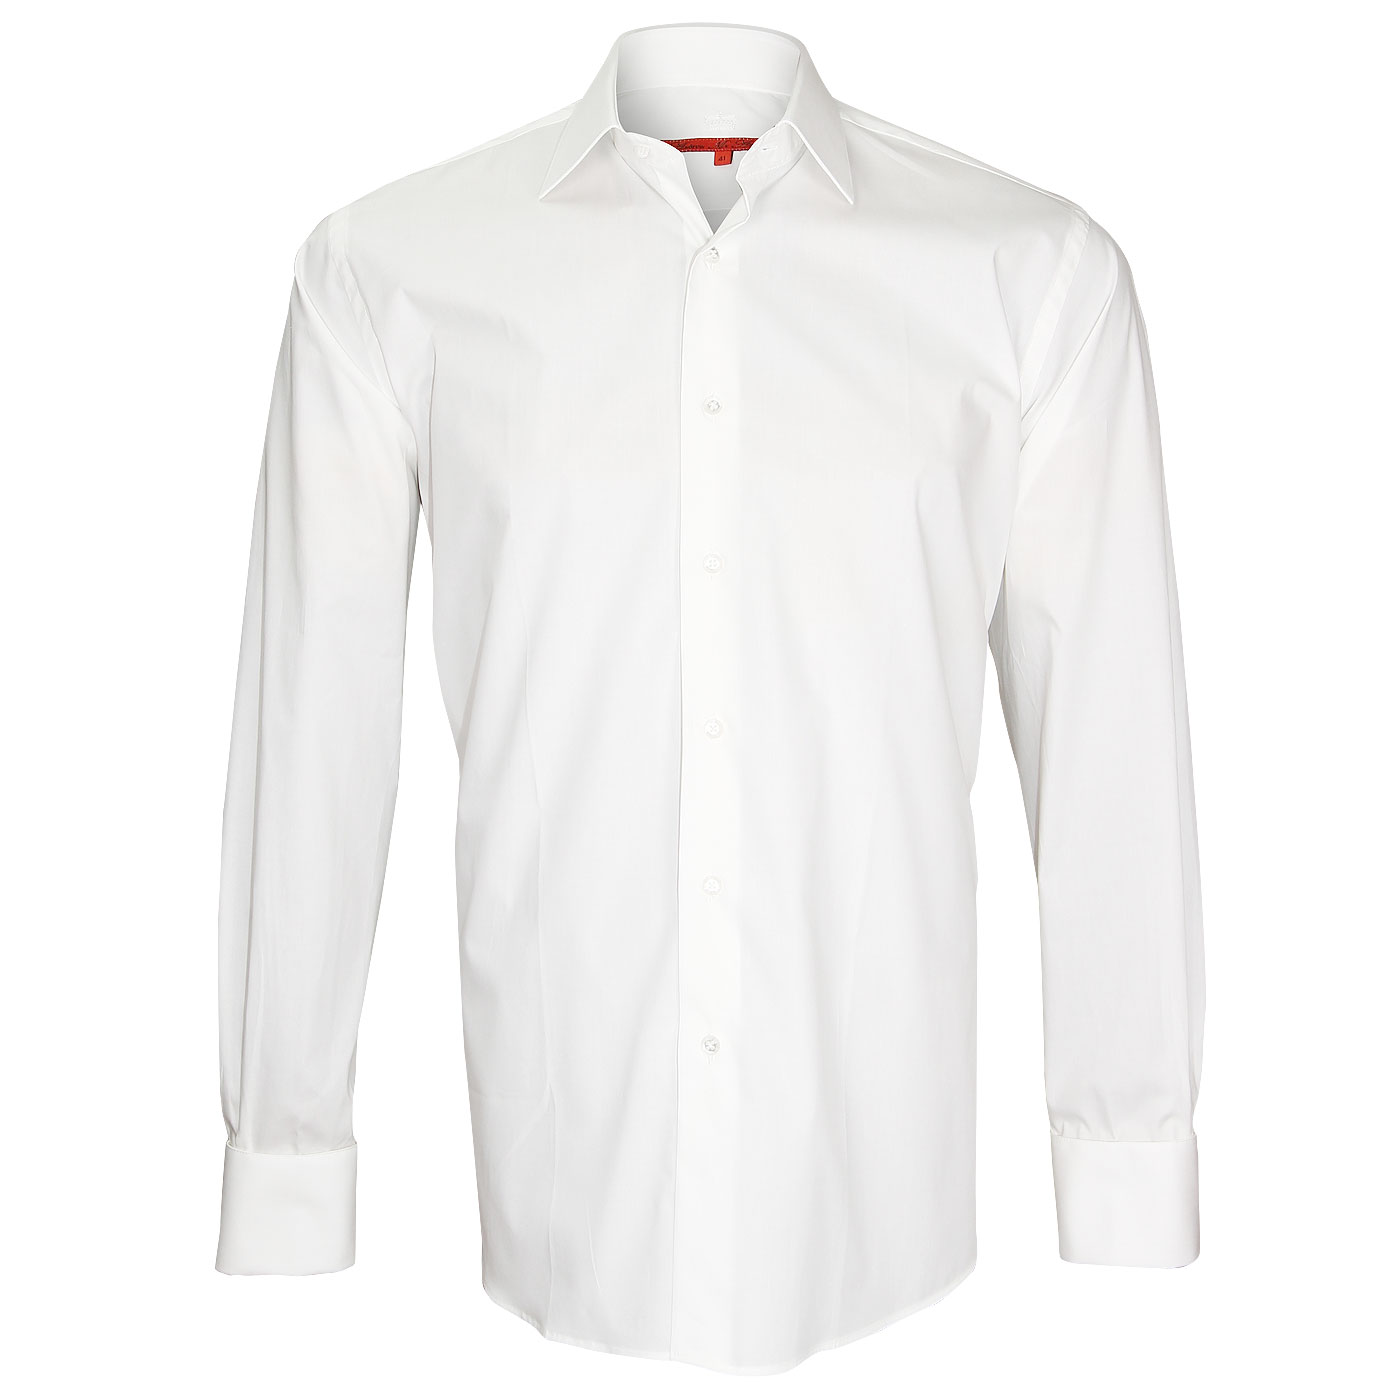 The White Shirt, the timeless sure value